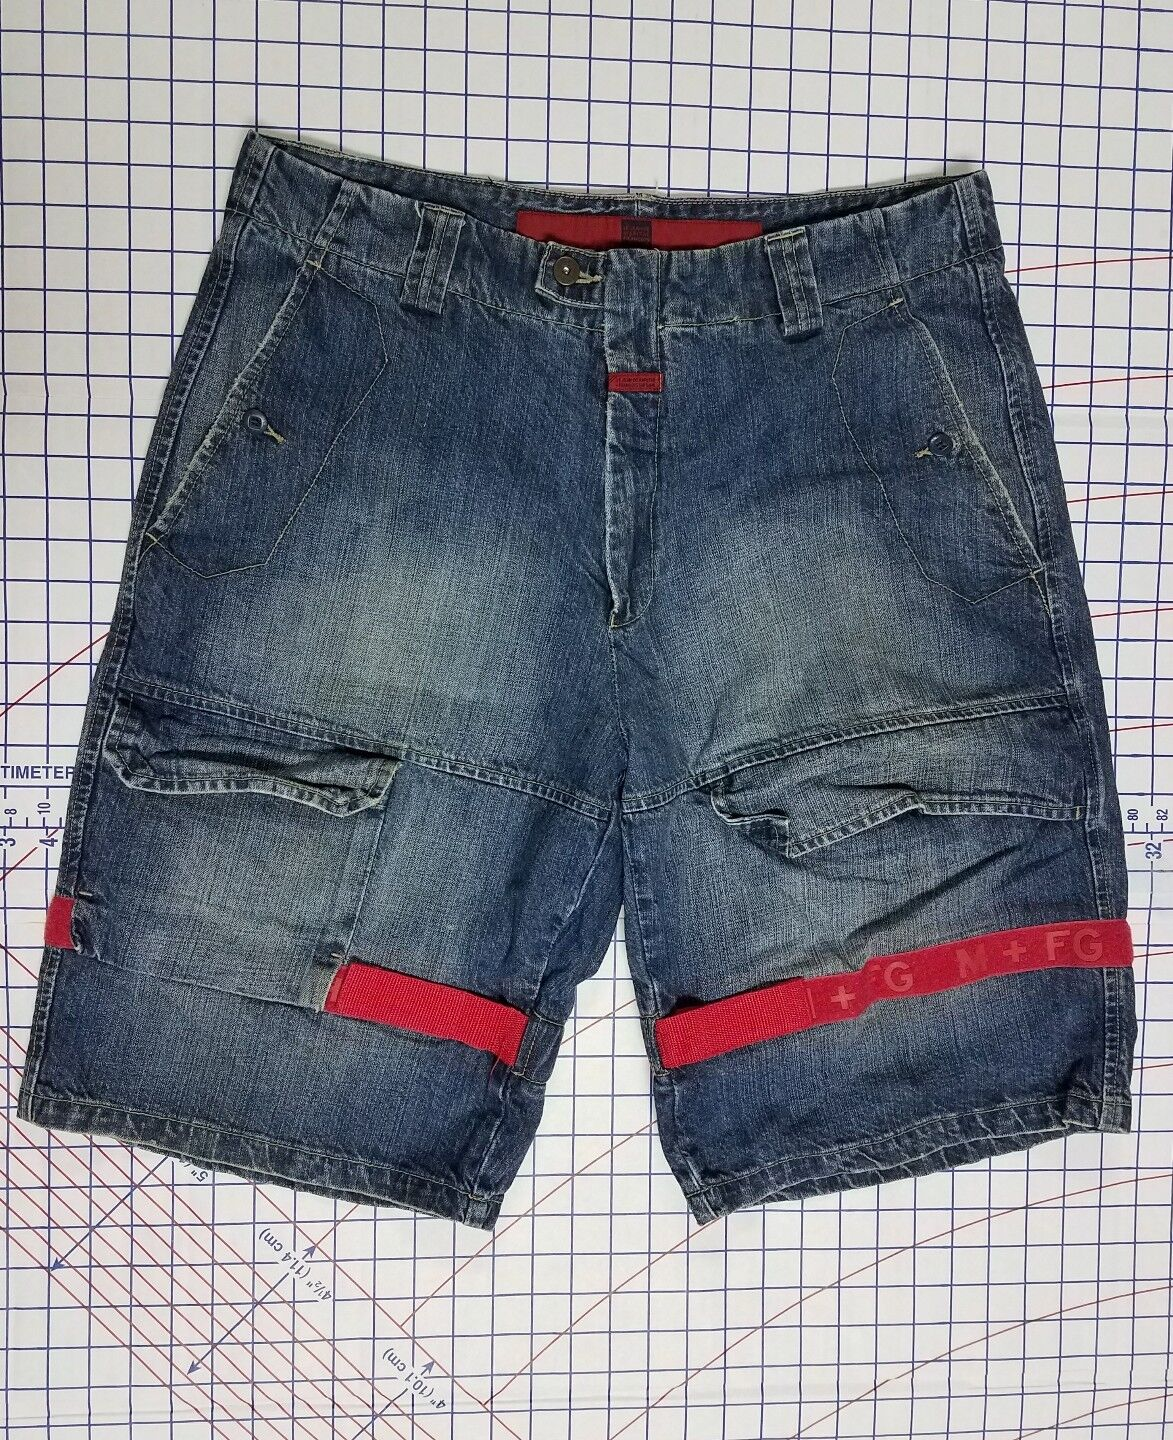 MARITHE FRANCOIS GIRBAUD 36 x 12 shorts bluee jeans designer straight baggy loose